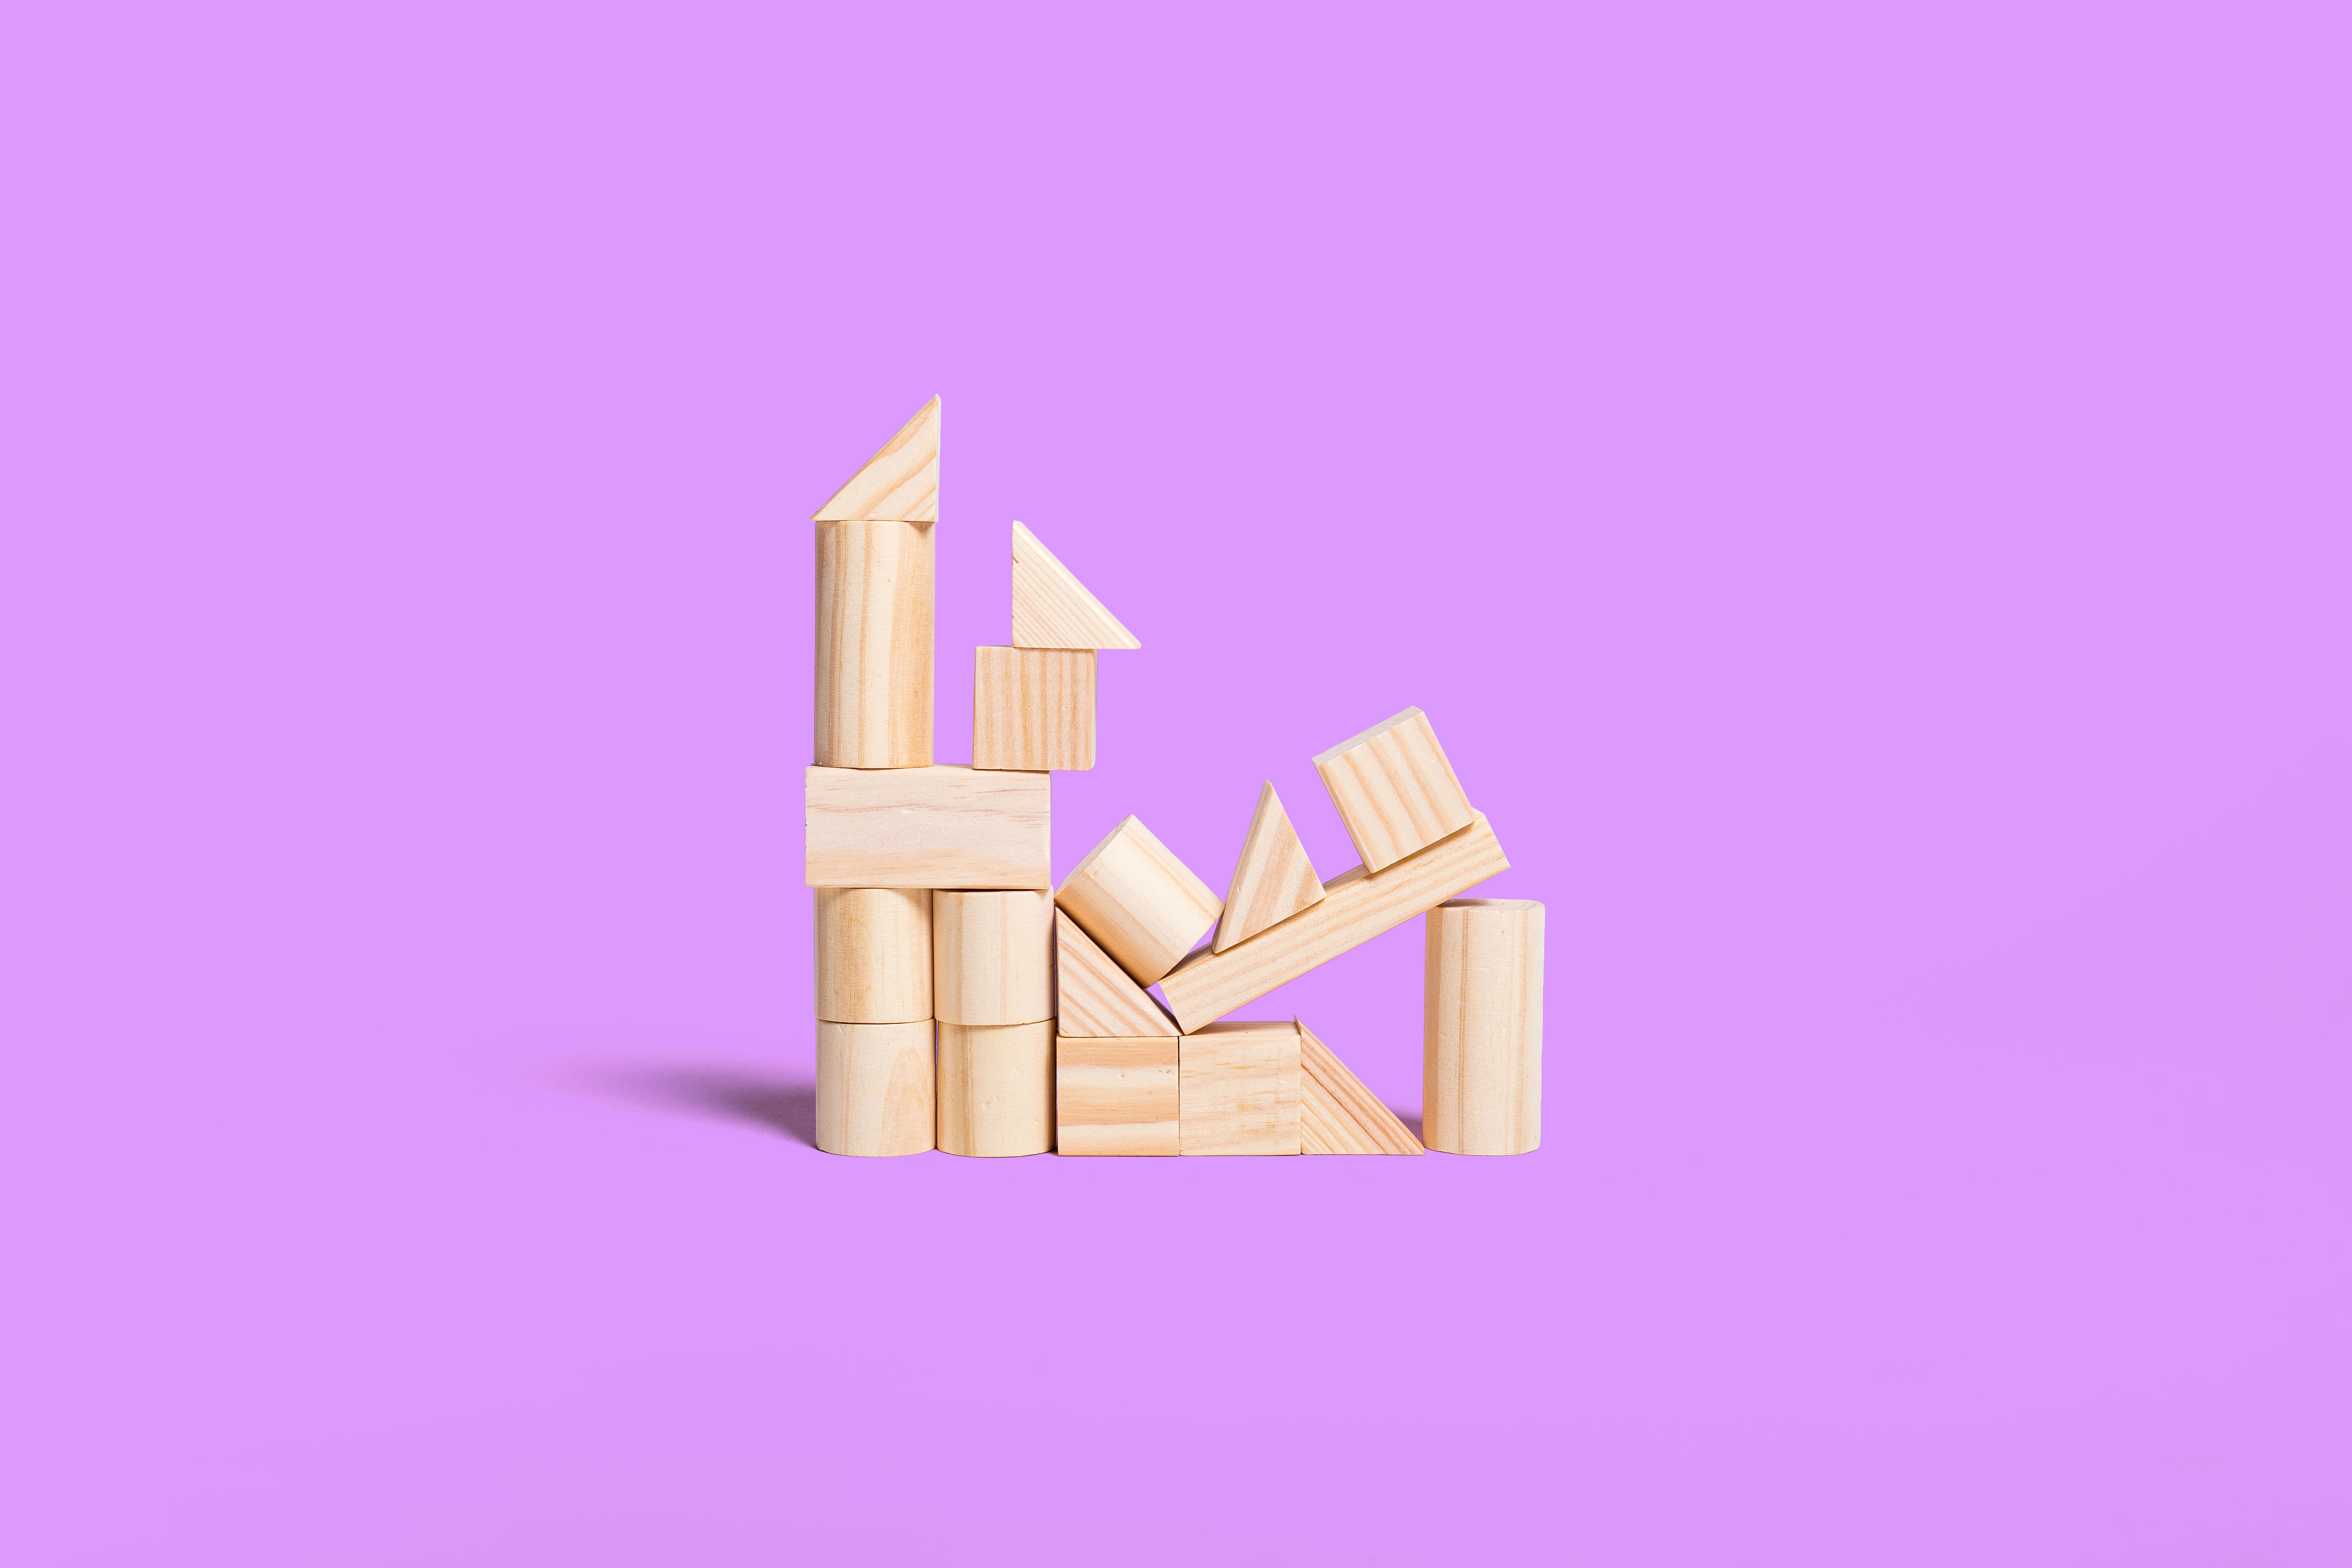 Stacked wooden blocks